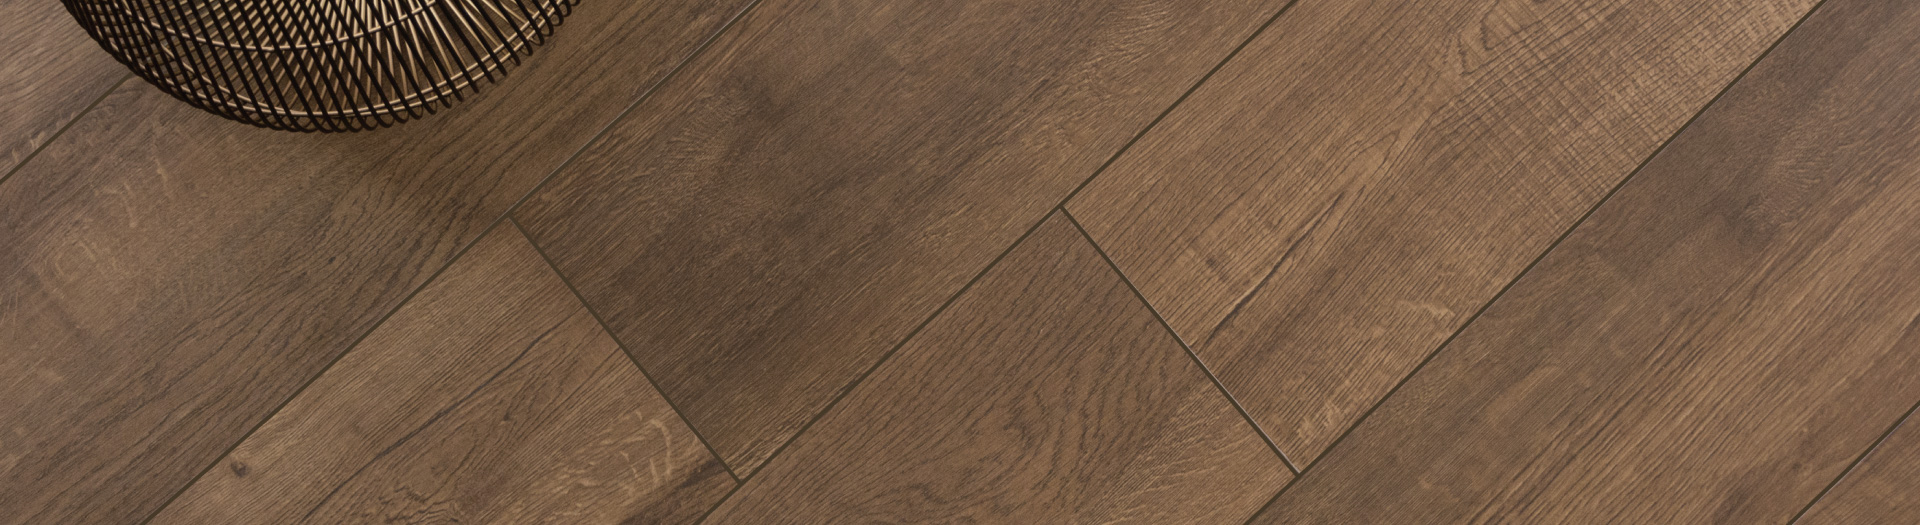 We are a leading ceramic and porcelain tiles distributor vip login contact us dailygadgetfo Image collections